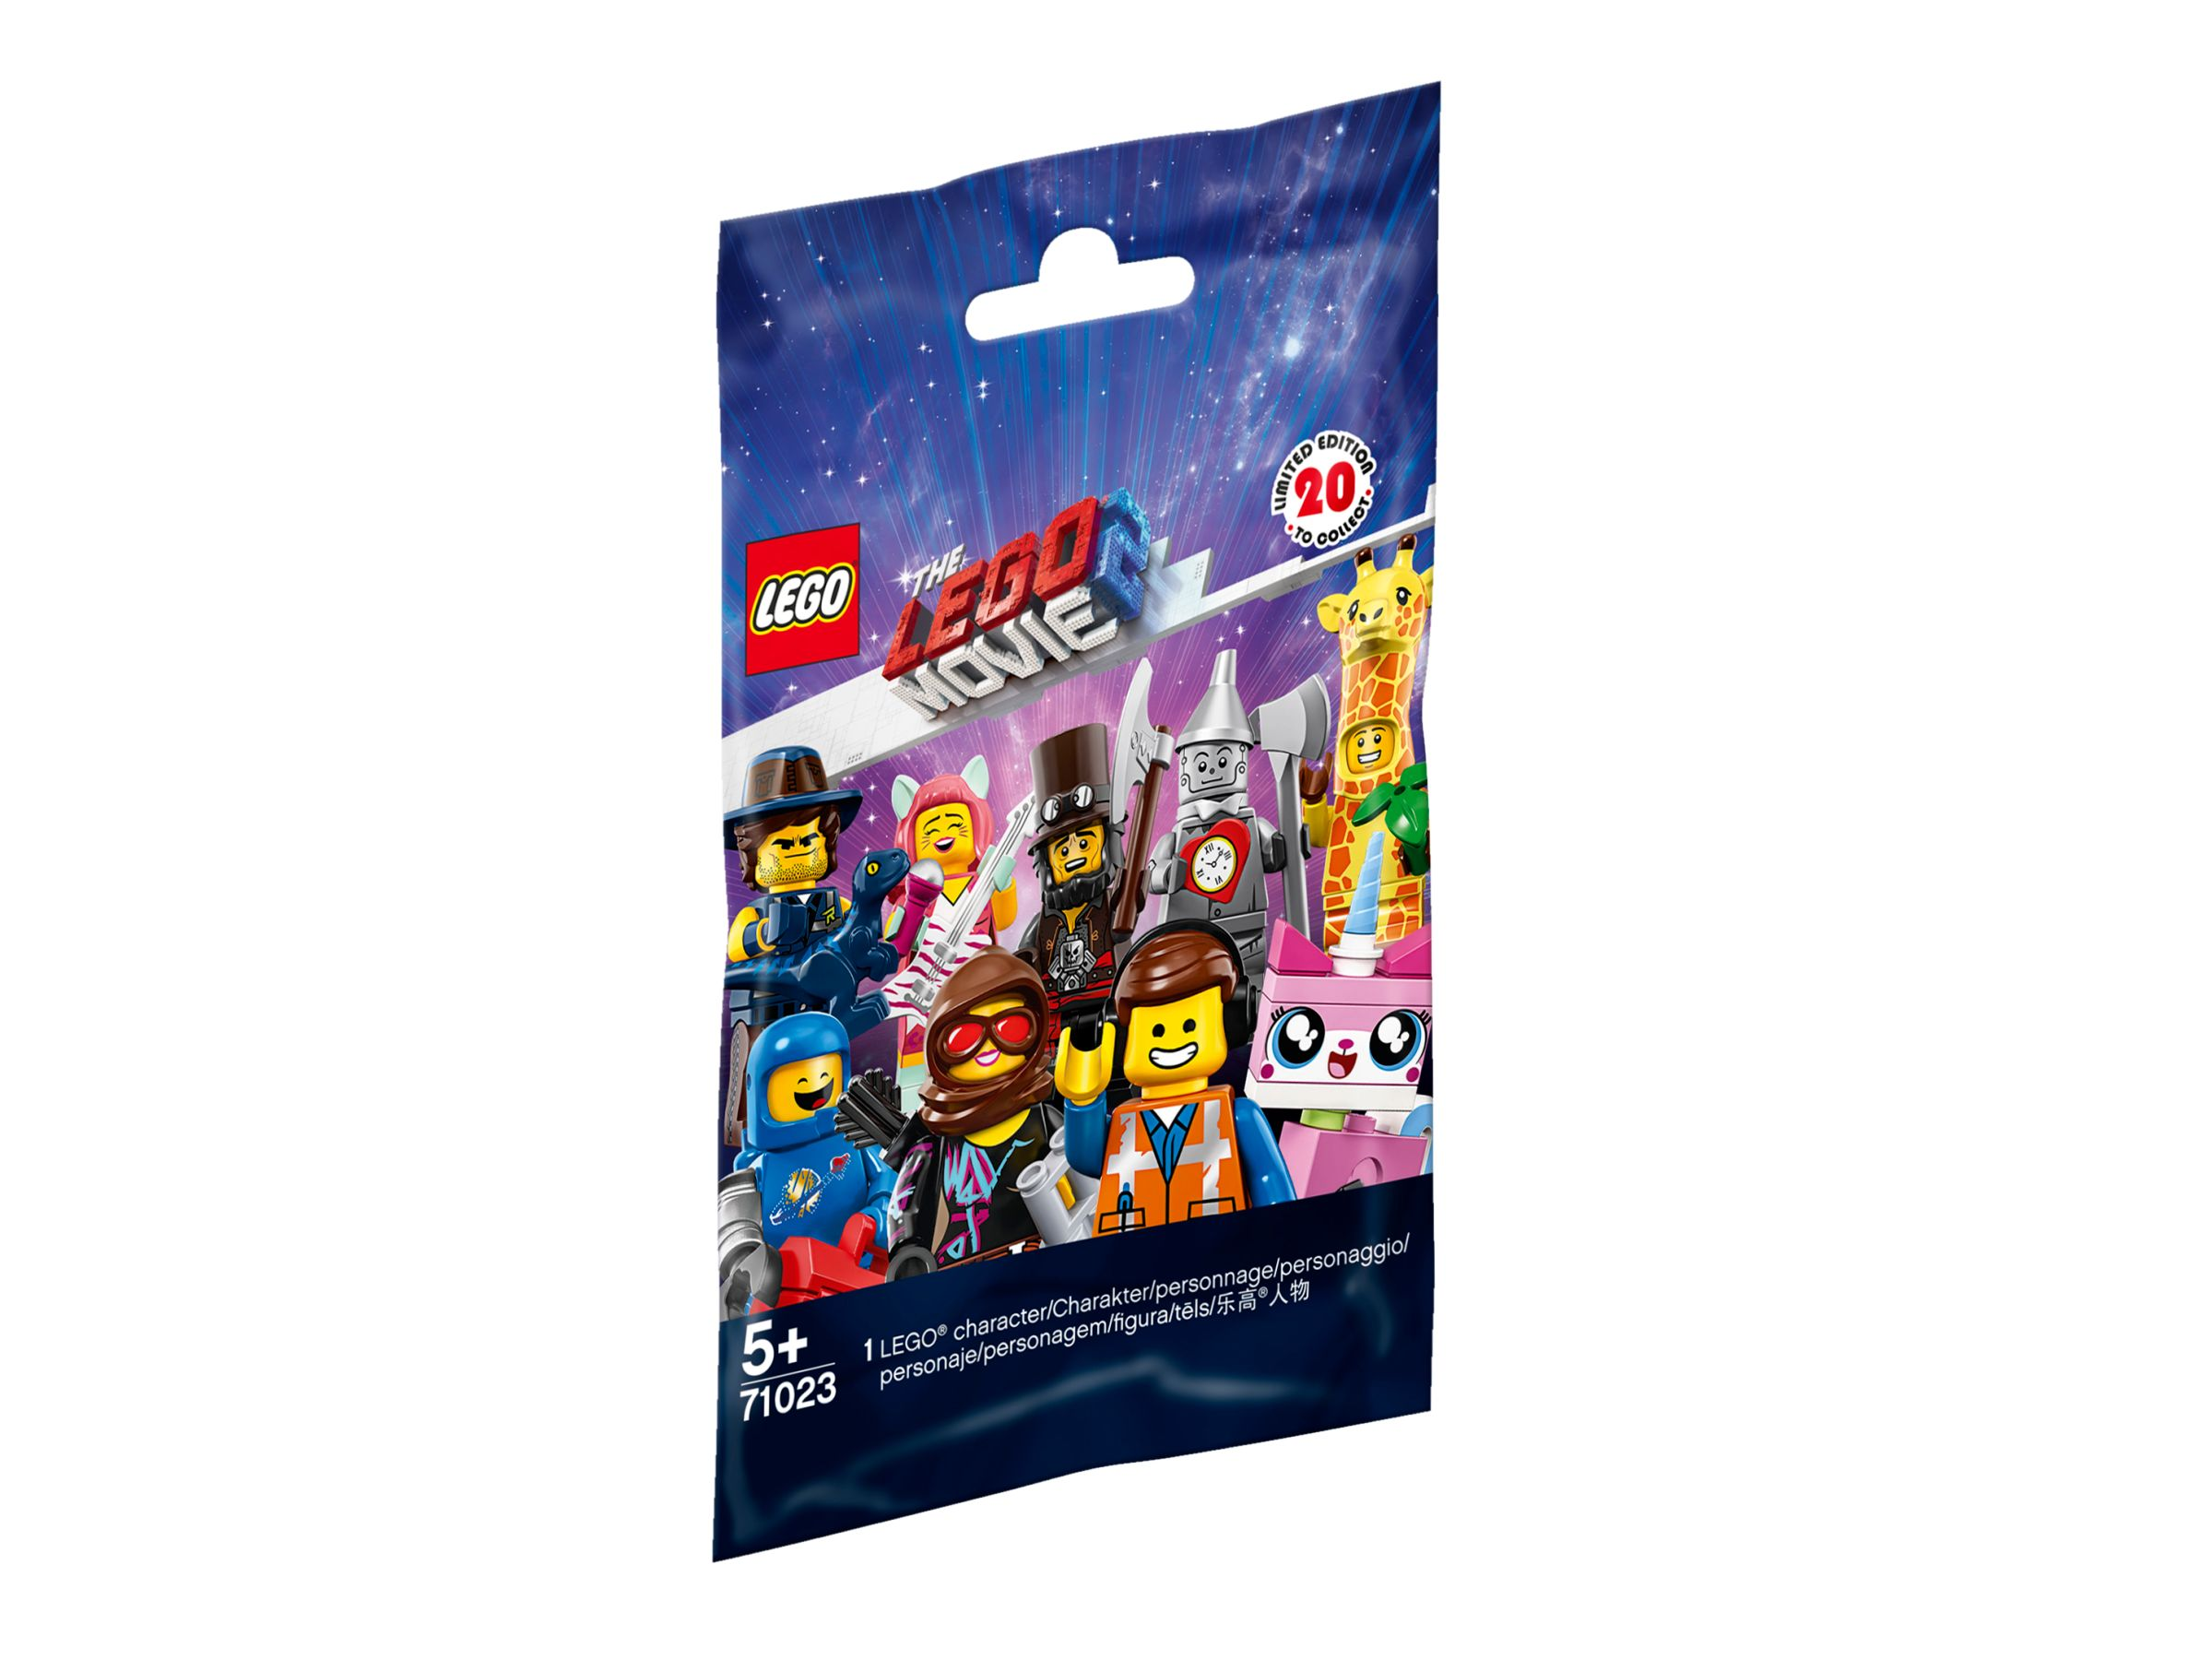 LEGO Collectable Minifigures 71023 THE LEGO® MOVIE 2 LEGO_71023_alt1.jpg